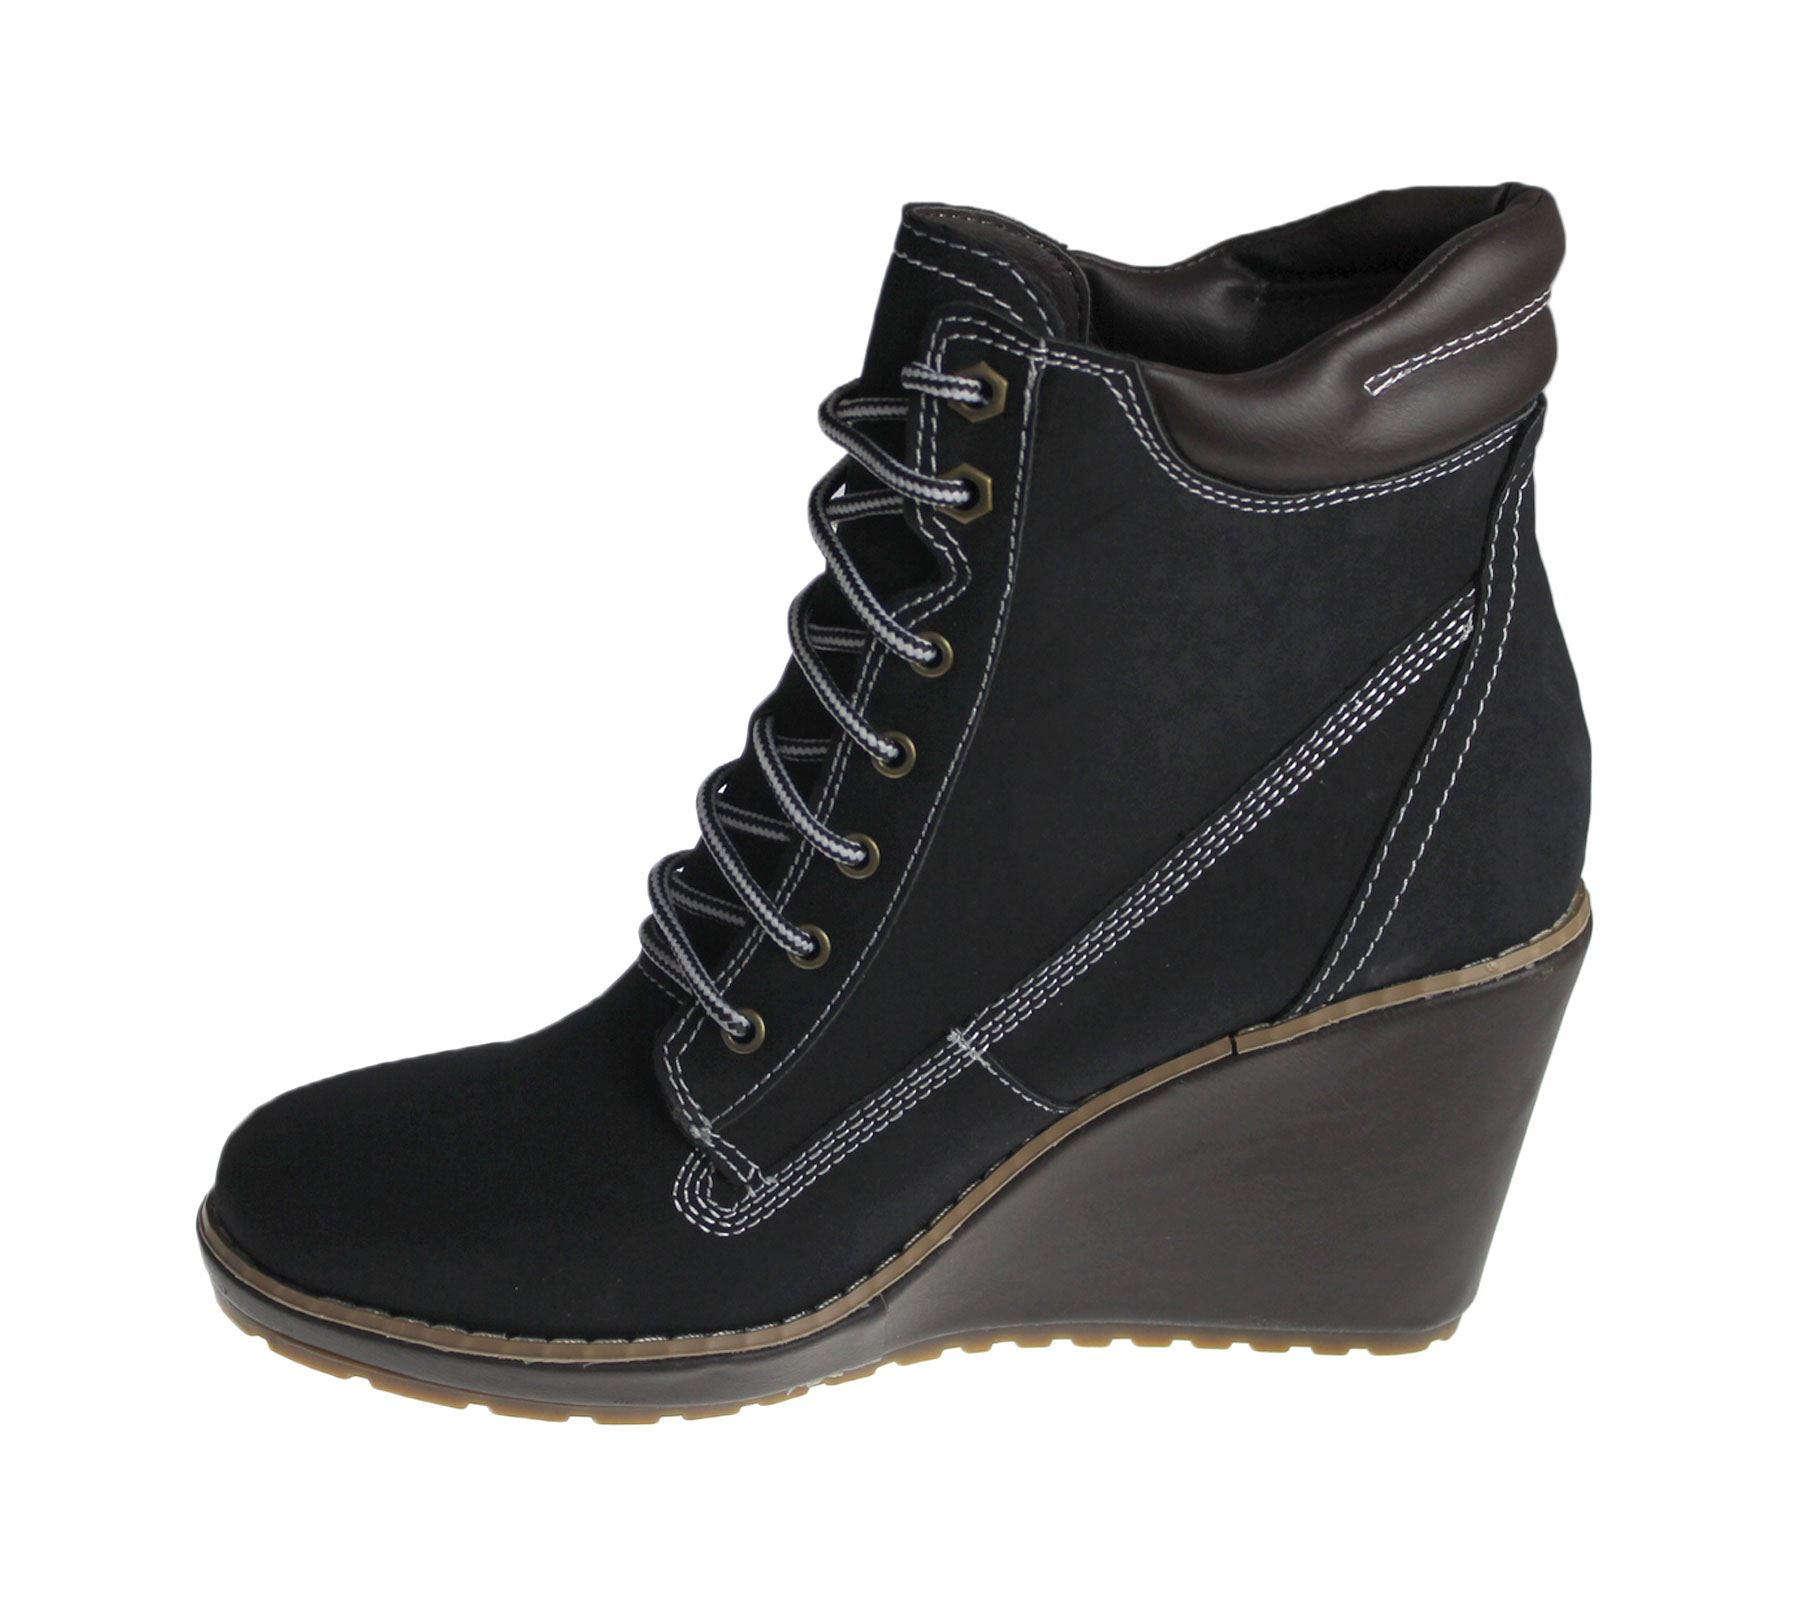 Womens Wedge Heel Boots Ladies High Top Desert Winter